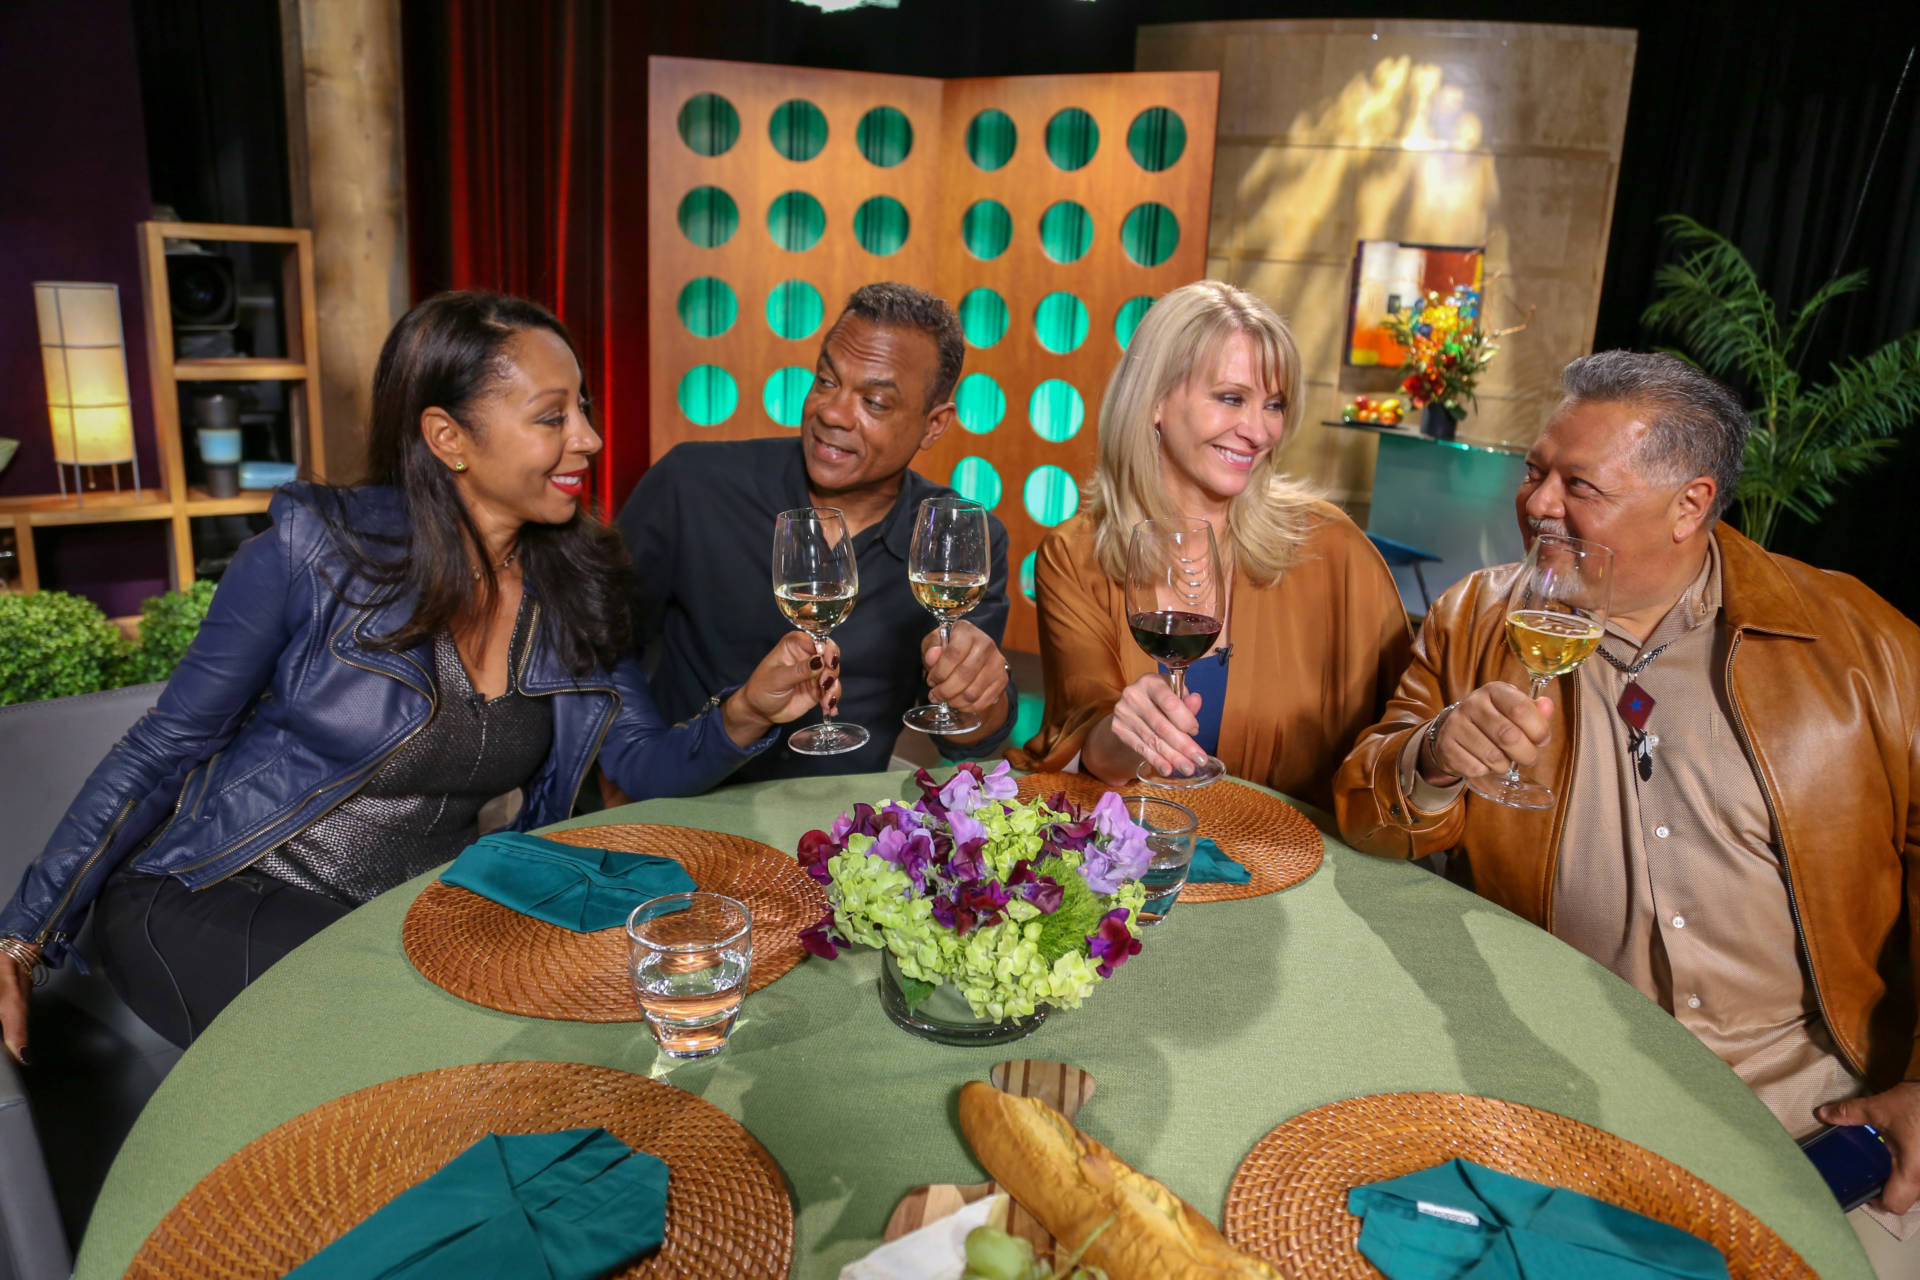 Host Leslie Sbrocco and guests on the set of season 13 episode 11.